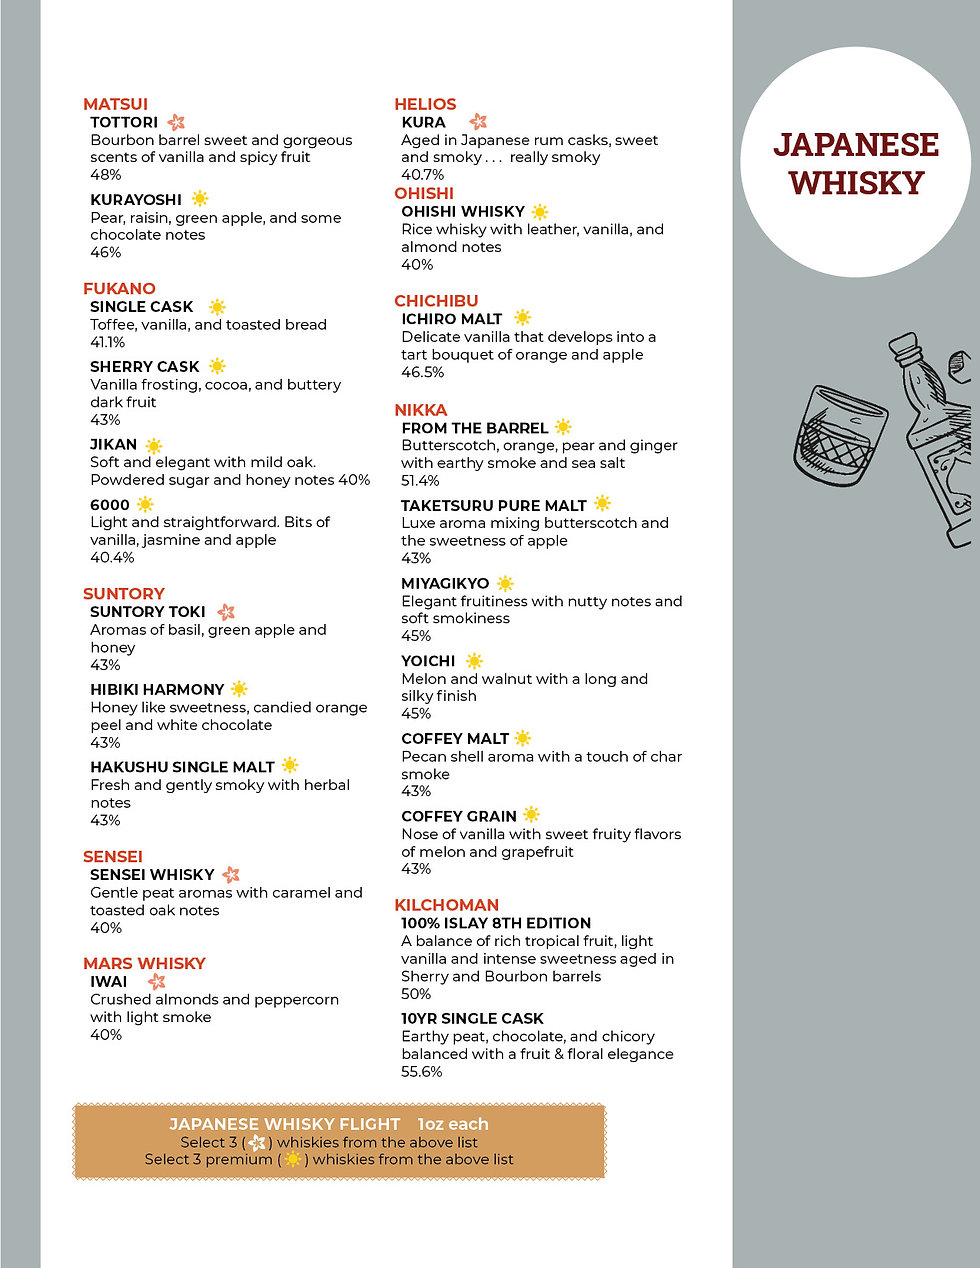 drink menu_053120_withoutprice5.jpg